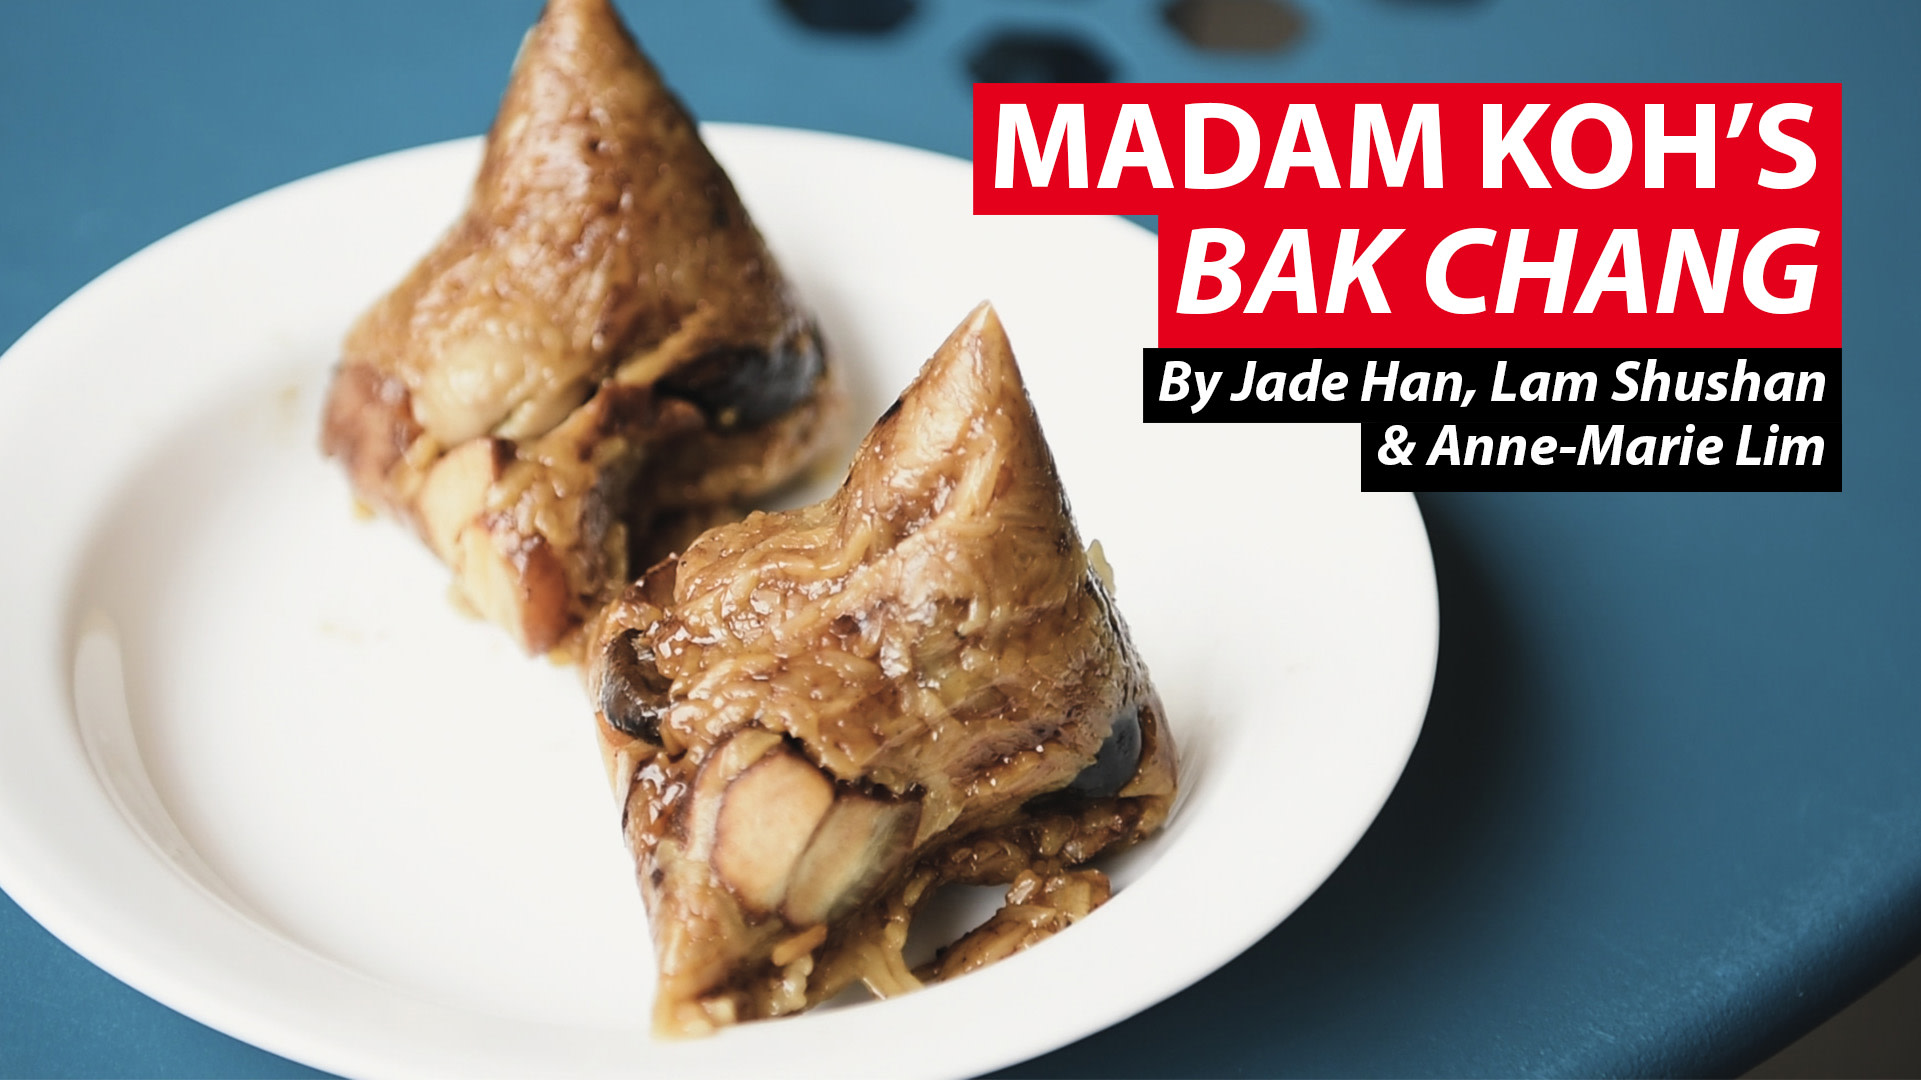 Madam Koh's bak chang recipe